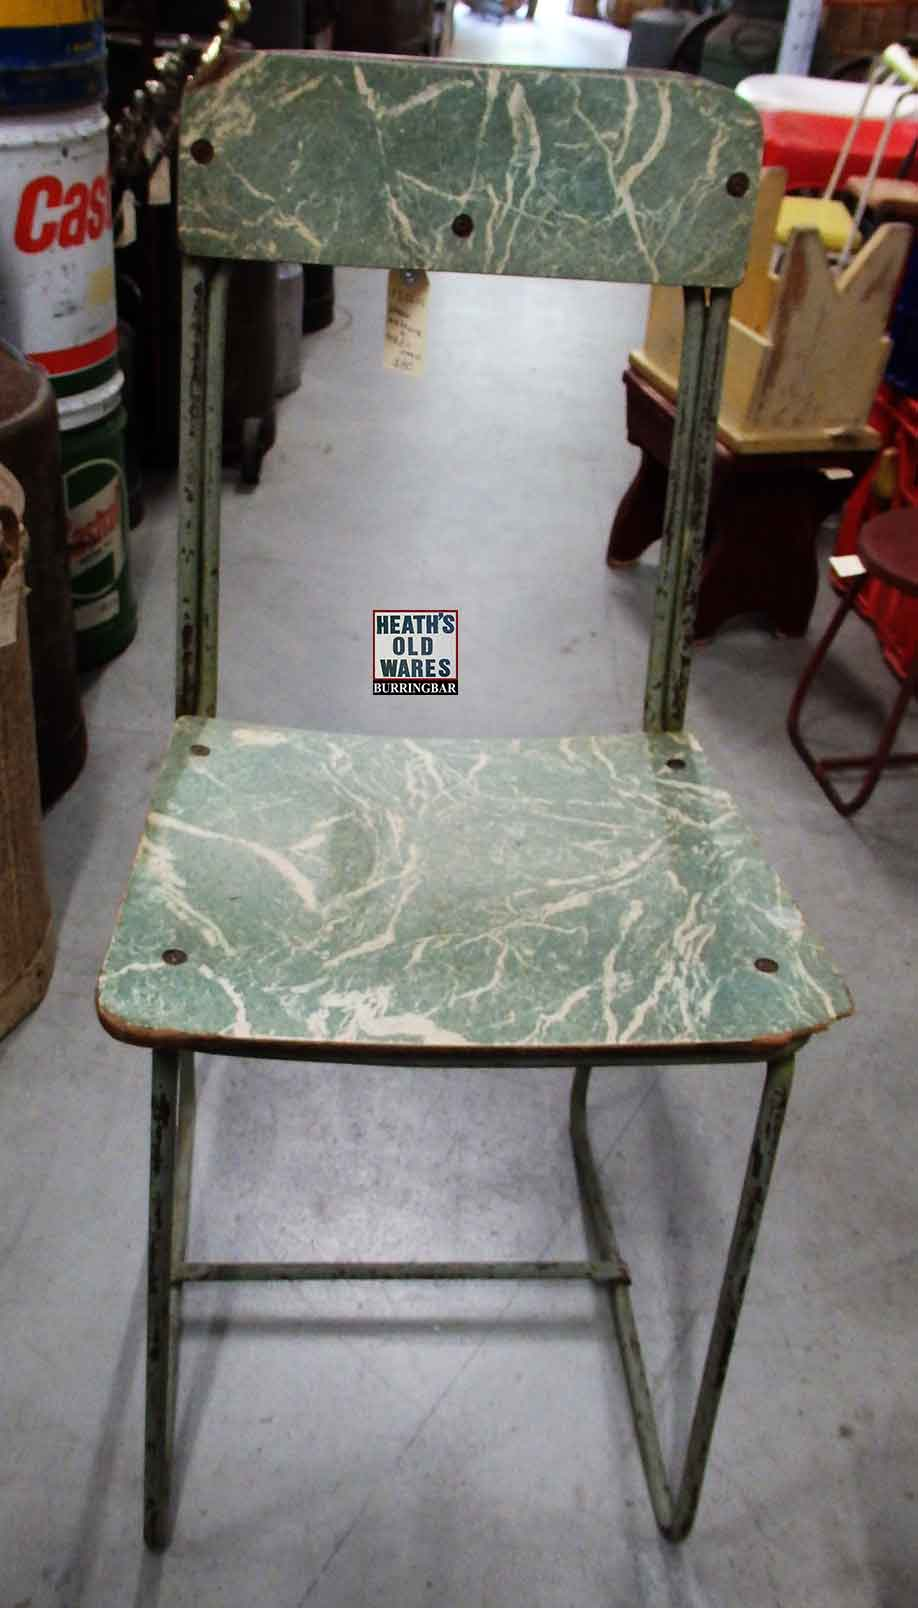 Vintage 1950s green and white laminate chair $80 for sale at Heaths Old Wares, Collectables, Antiques & Industrial Antiques, 19-21 Broadway, Burringbar NSW 2483 Ph 0266771181 open 7 days